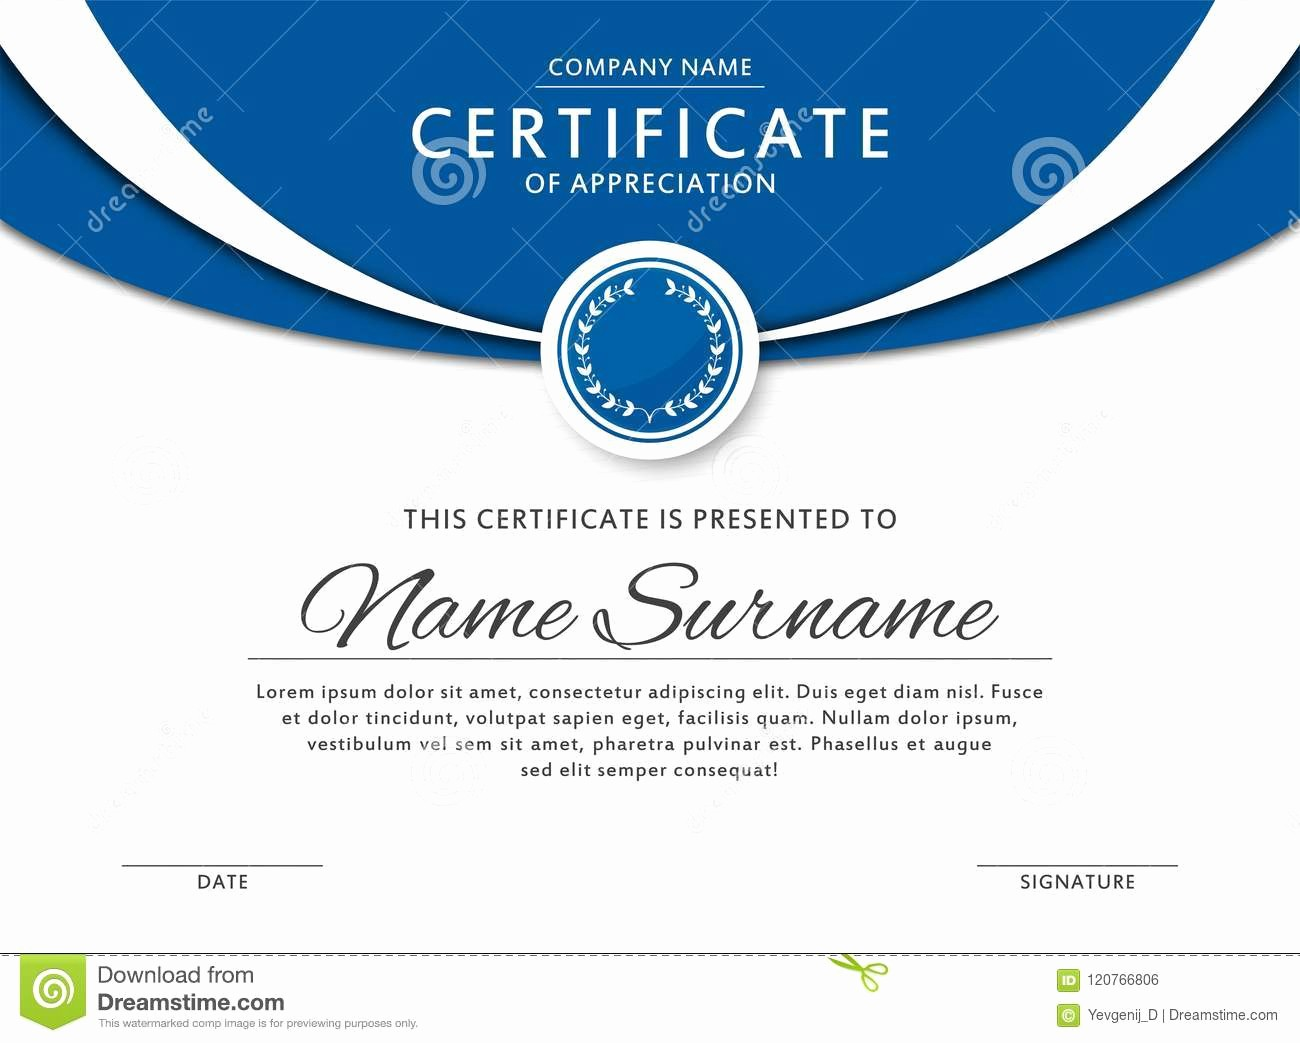 Border for Certificate Of Appreciation New Azul Diploma Frame Border Blue